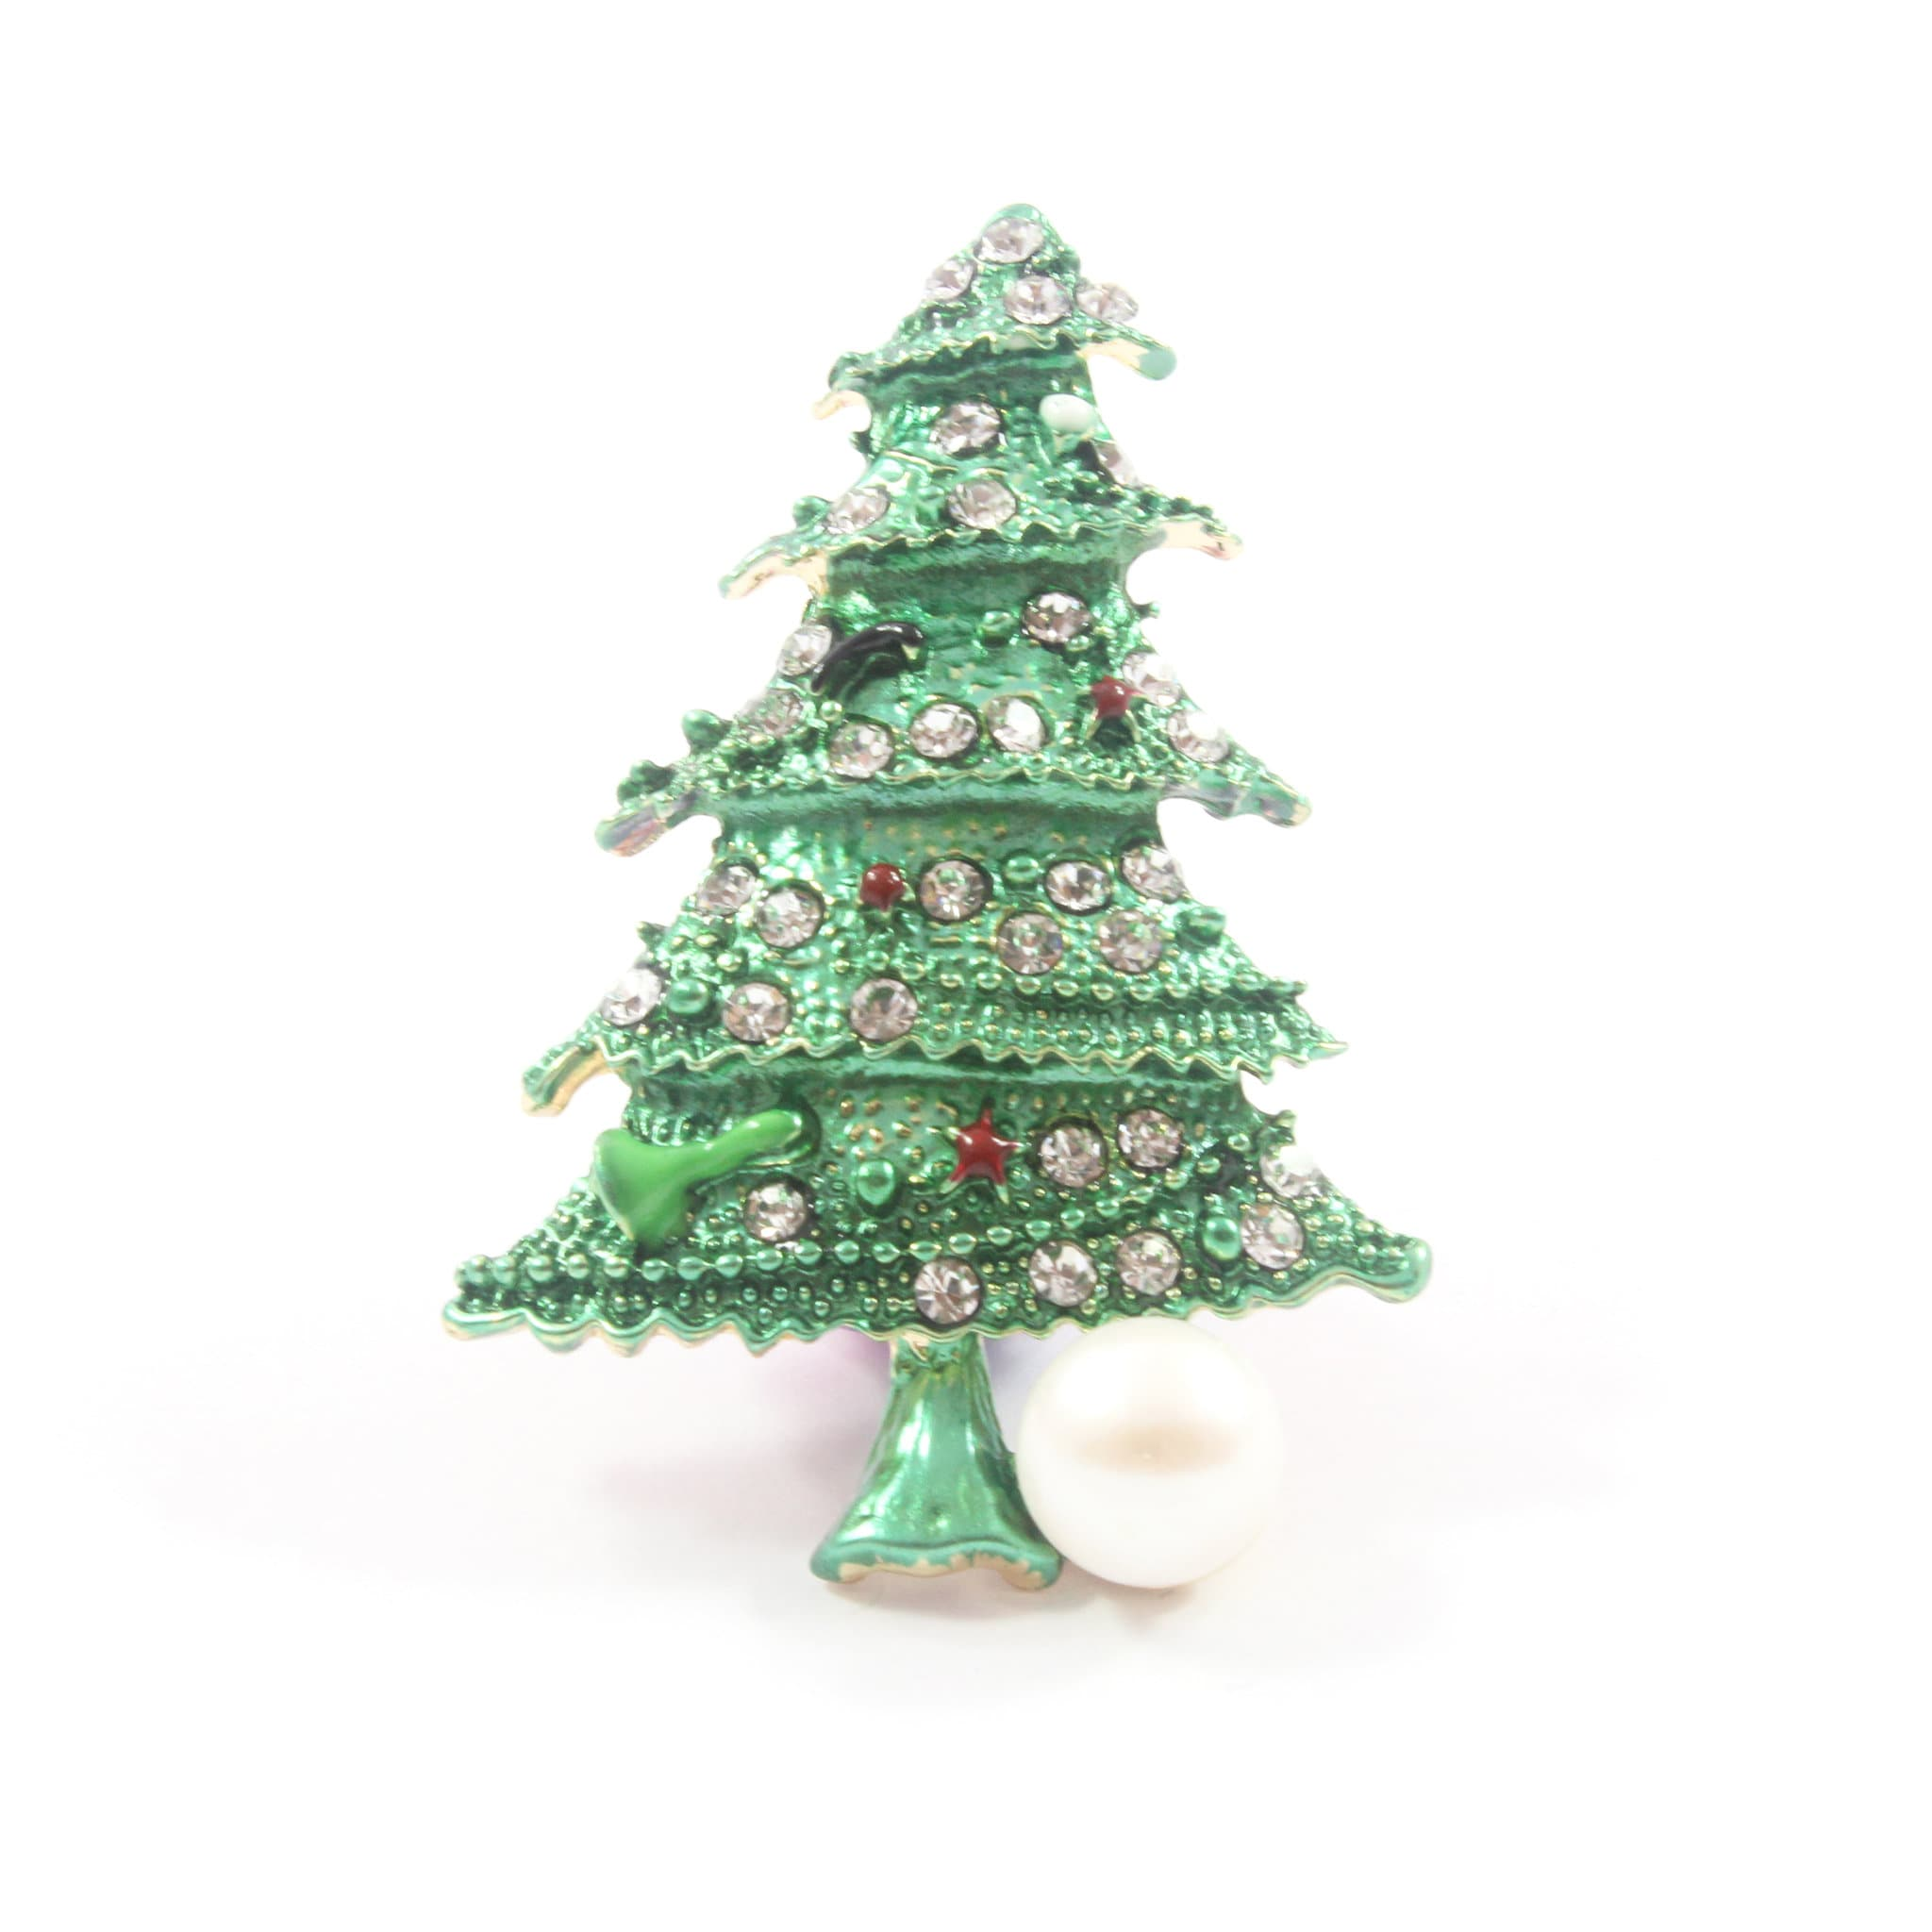 Christmas Tree Freshwater Cultured Pearl Brooch/Pendant 9.5-10.0mm